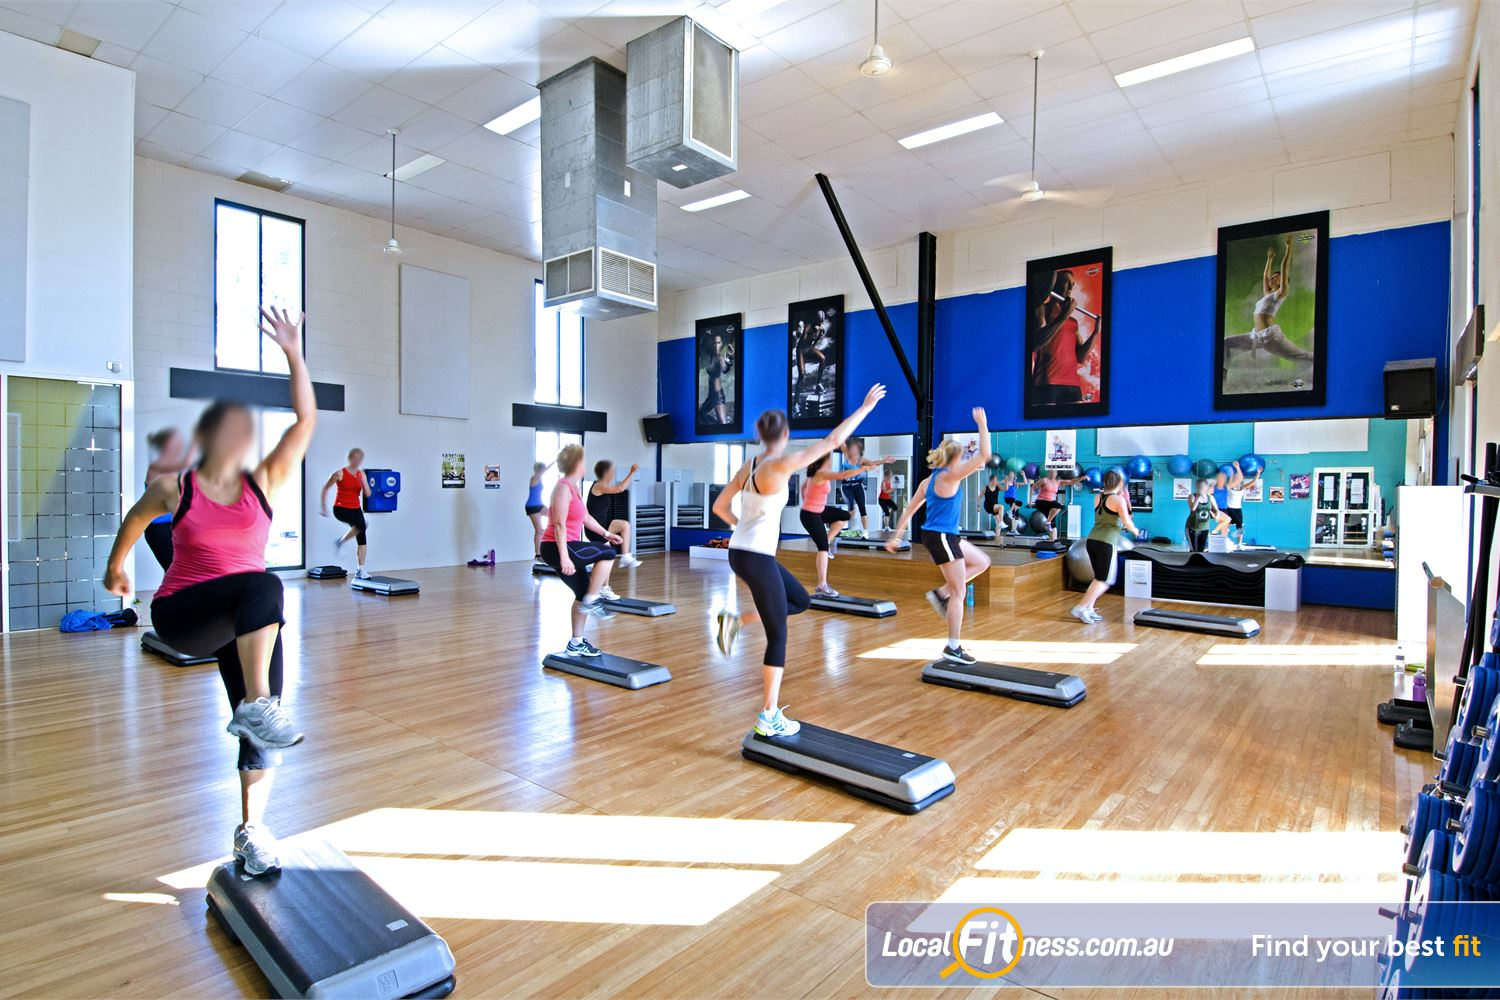 Goodlife Health Clubs Near Sherwood Les Mills, Boxing, Emily Skye and more.